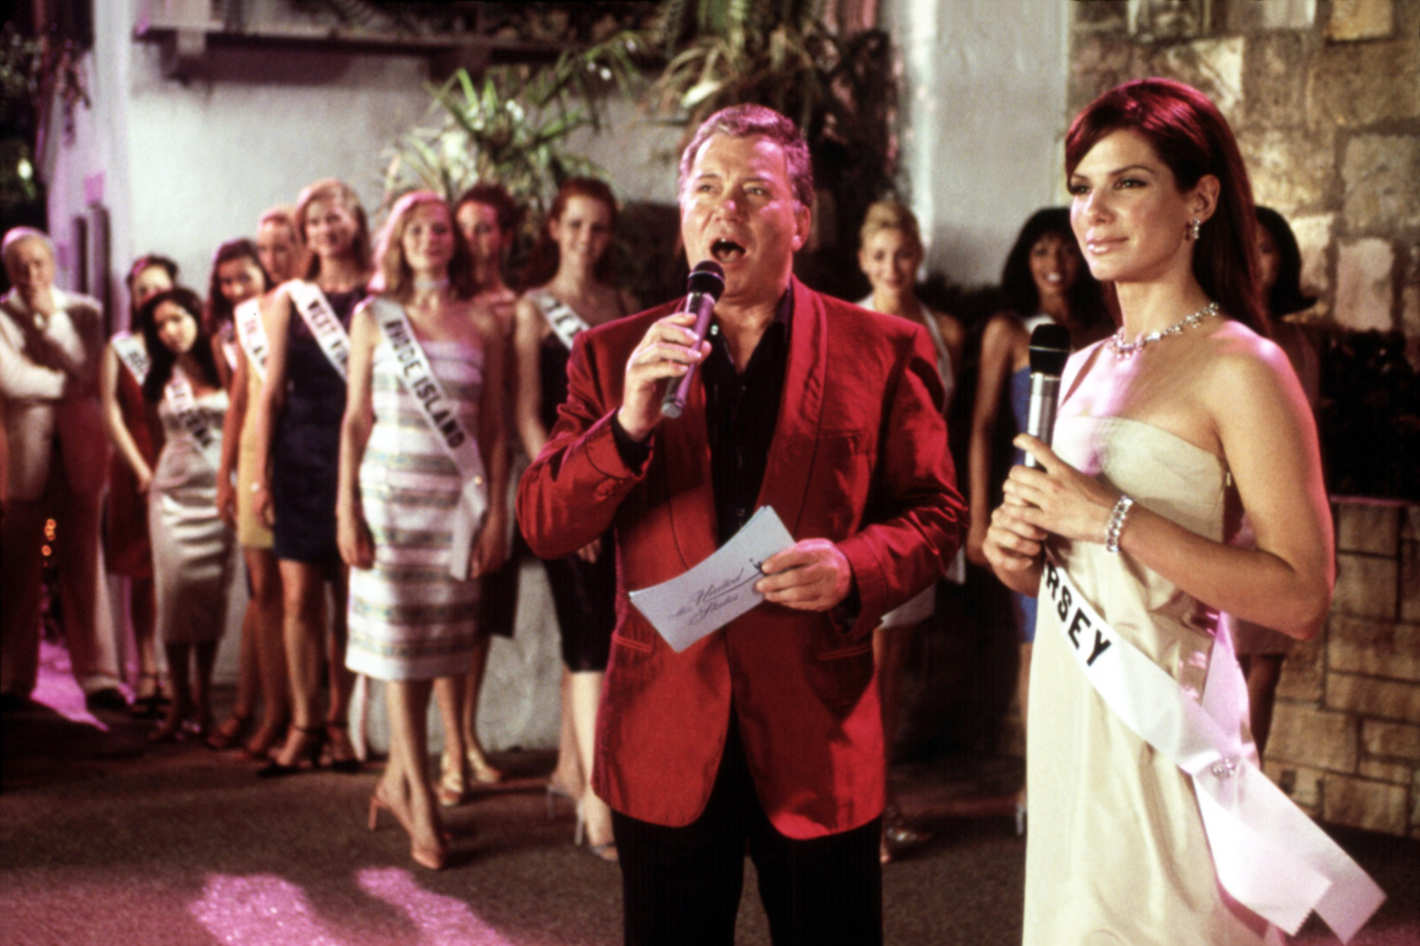 MISS CONGENIALITY (2000 / 35mm Print), BLUE VELVET (1986 / DCP), SUSPIRIA (1977 / DCP), POLICE STORY (1985 / 4K DCP), POLICE STORY 2 (1988 / 4K DCP). - Fri Feb 15th & Sat Feb 16th / IFC Center, New York City**Note Police Story 2 starts at 11:40pm // All films screen as single movie sessions.More info HERE